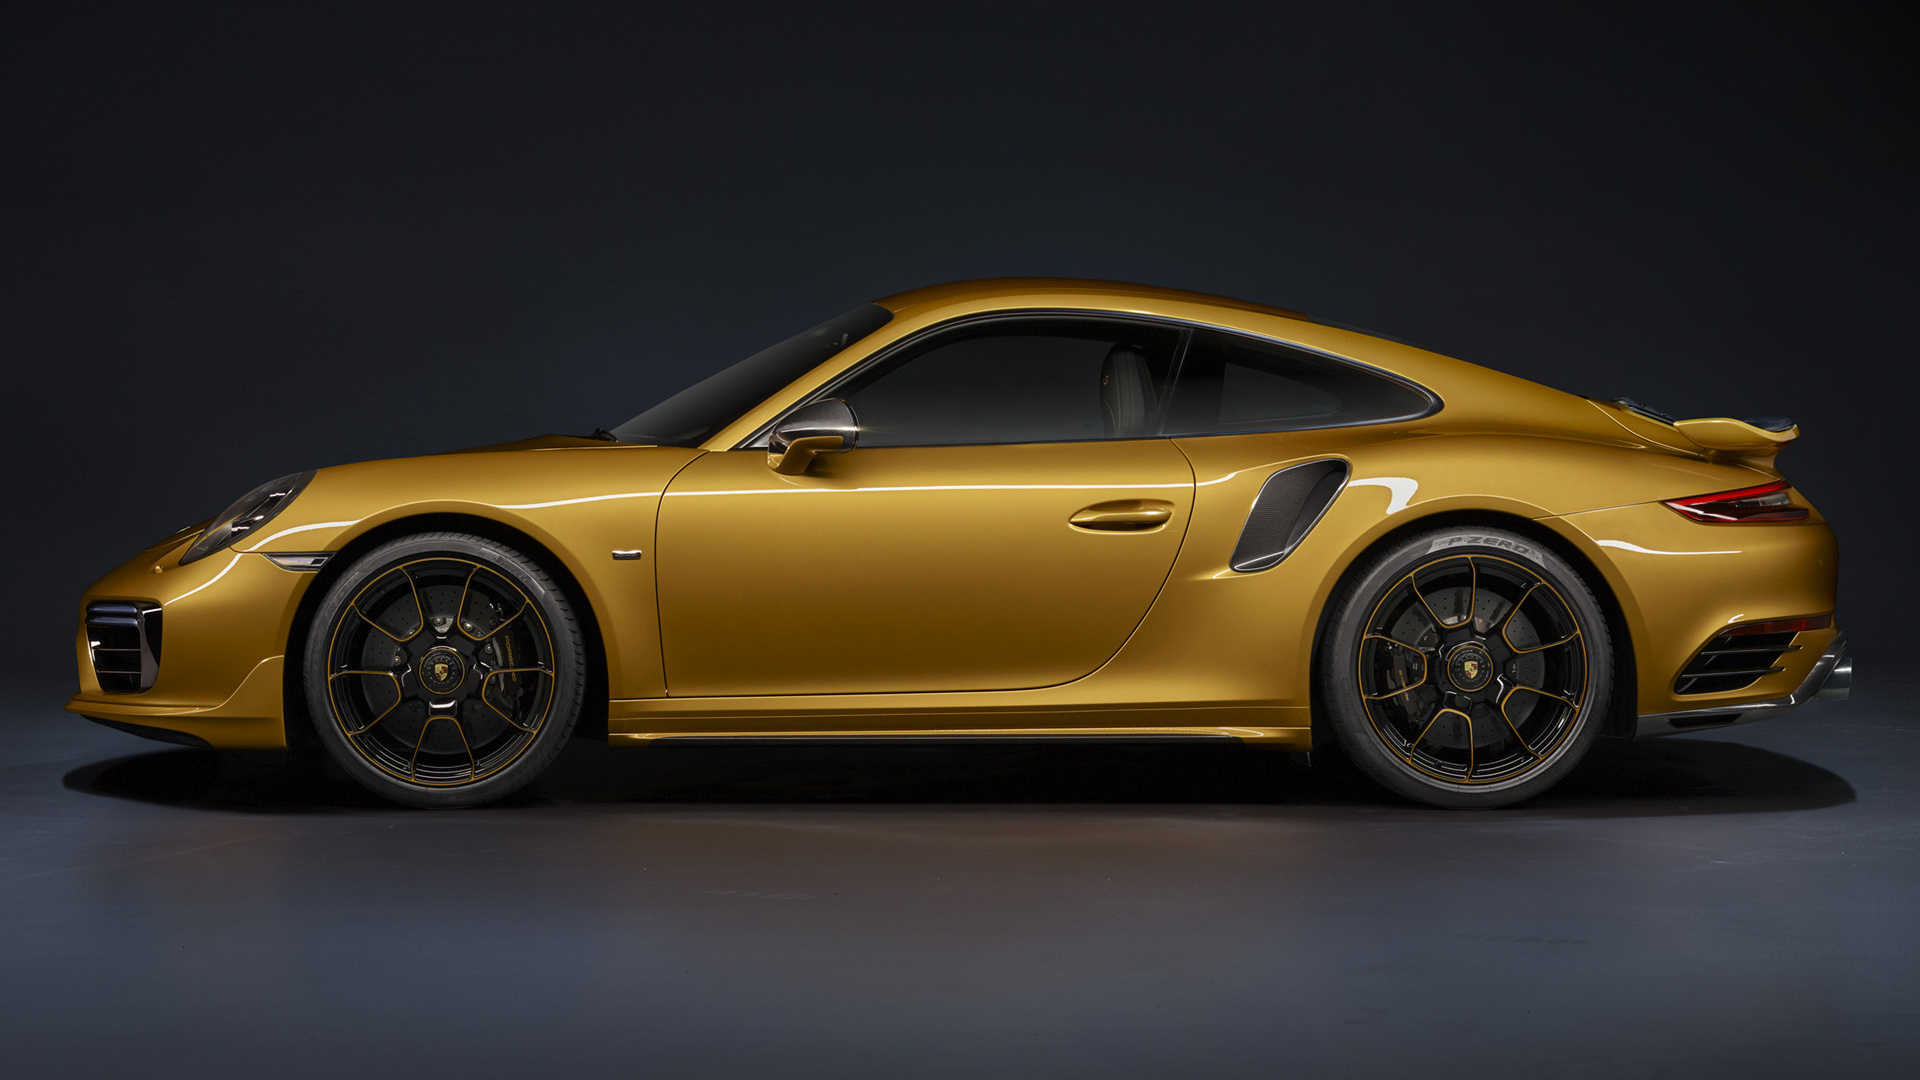 911 Carrera Gts >> 2017 Porsche 911 Turbo S Exclusive Series - Wallpapers and ...